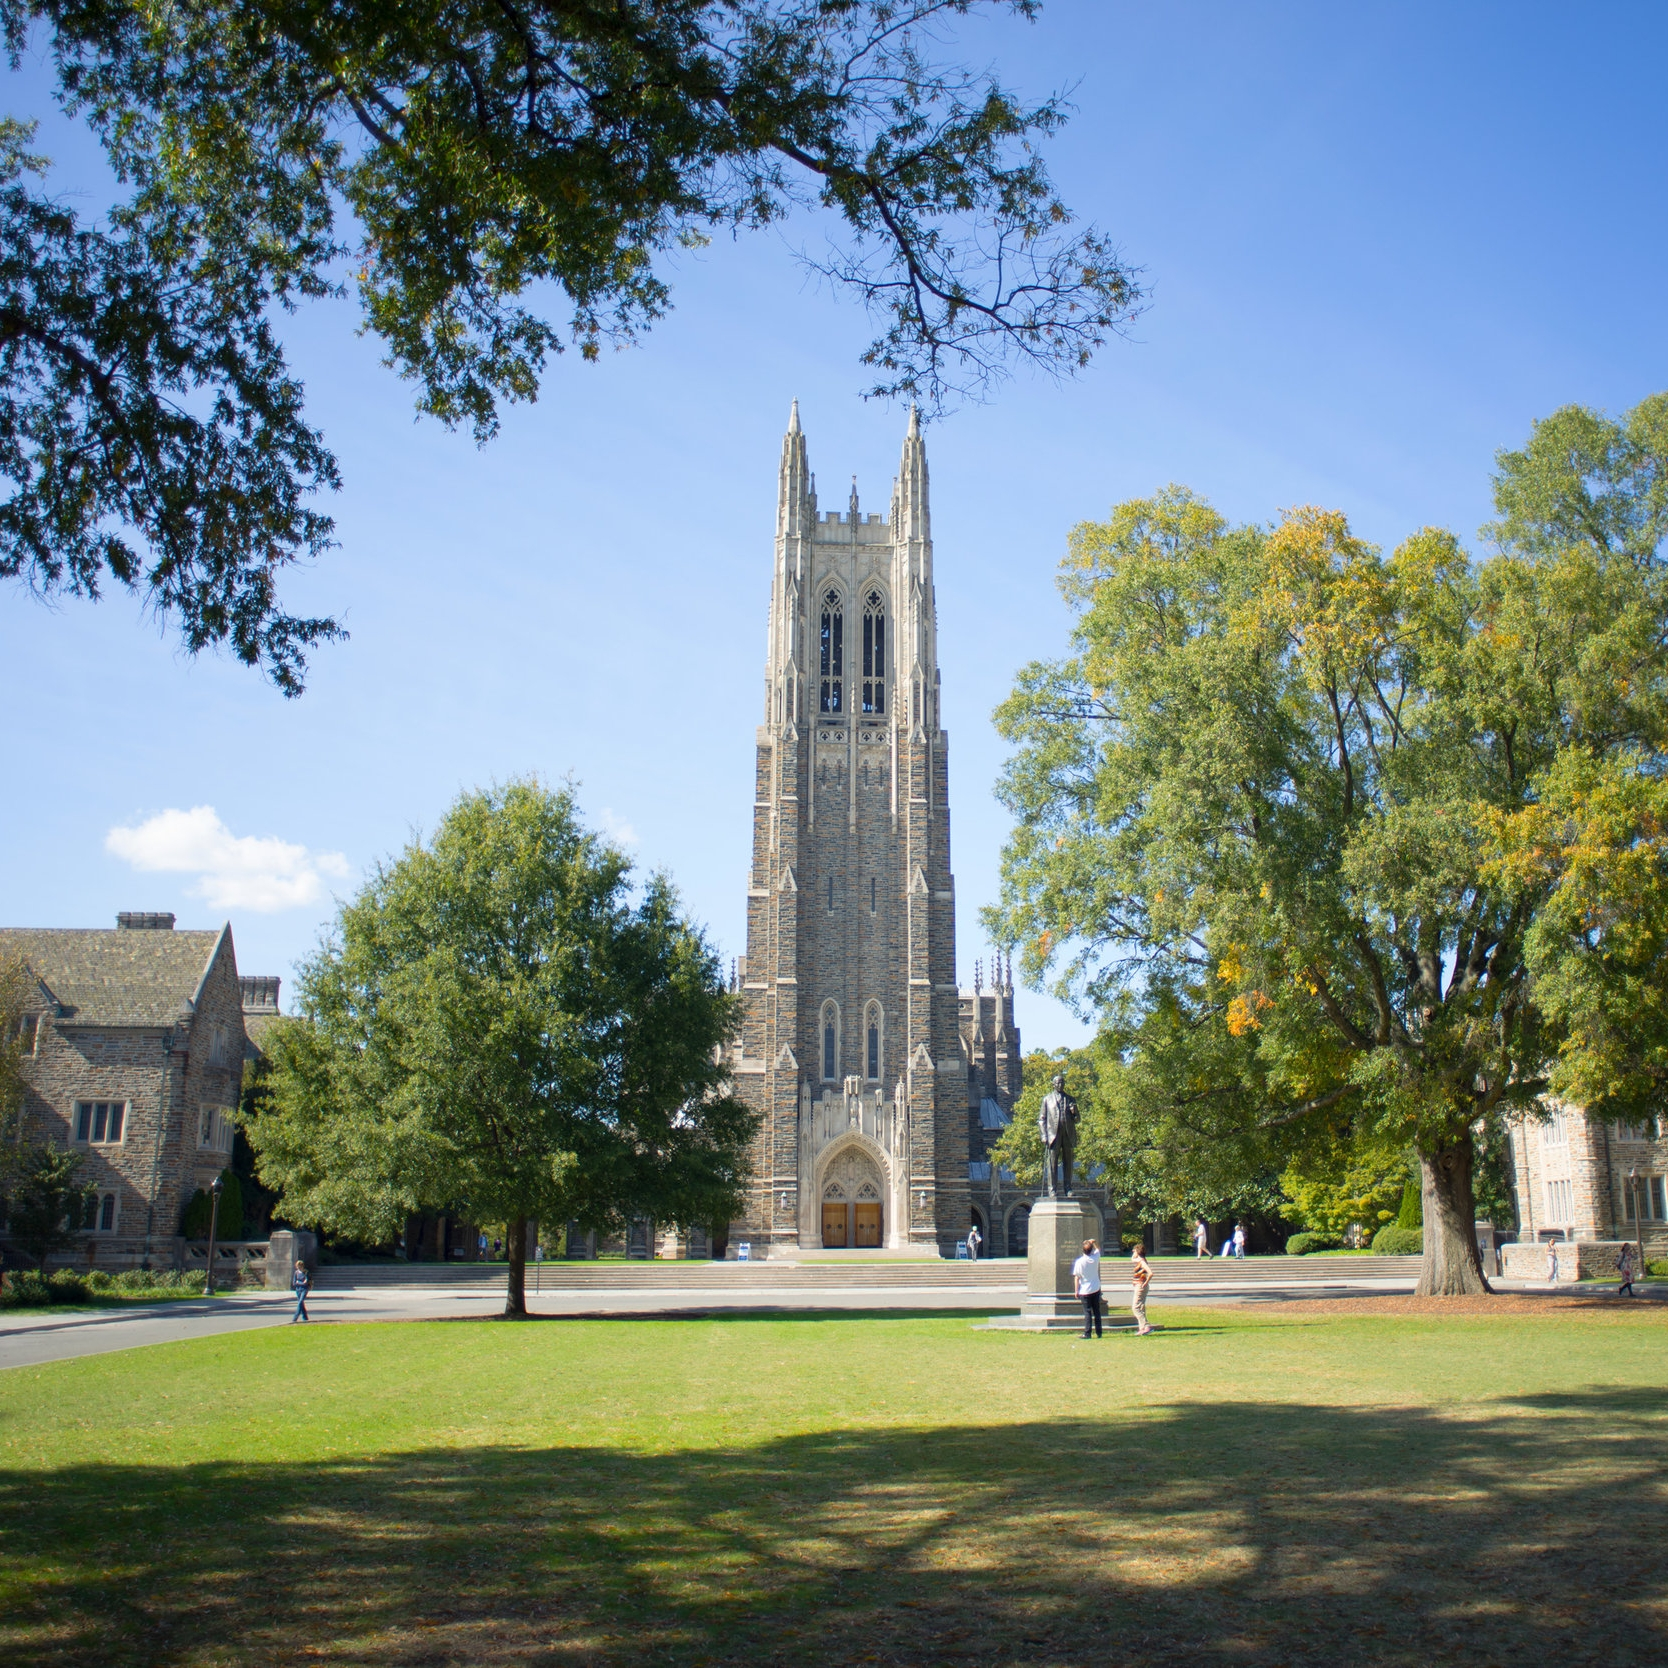 day 1 - Kick off your work week on Duke's East Campus Walking Trail, less than 2 miles round-trip from The Bartlett.Ready. Set. Go!